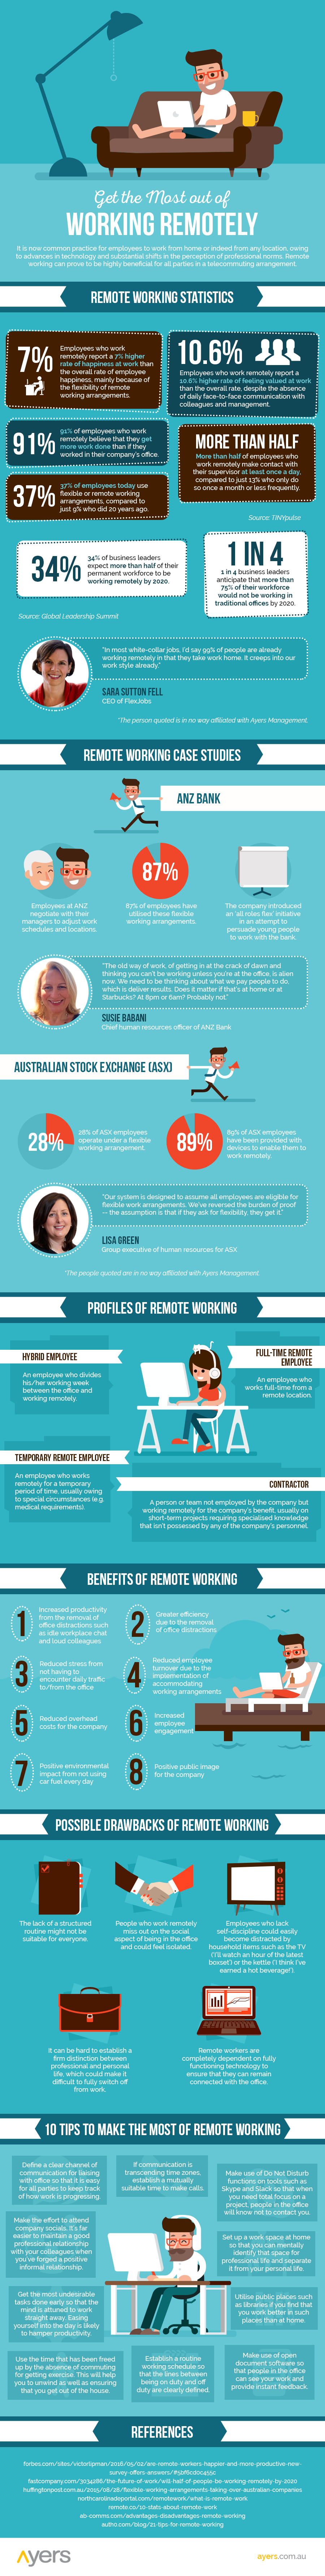 Get-the-Most-Out-of-Remote-Working-infographic-plaza